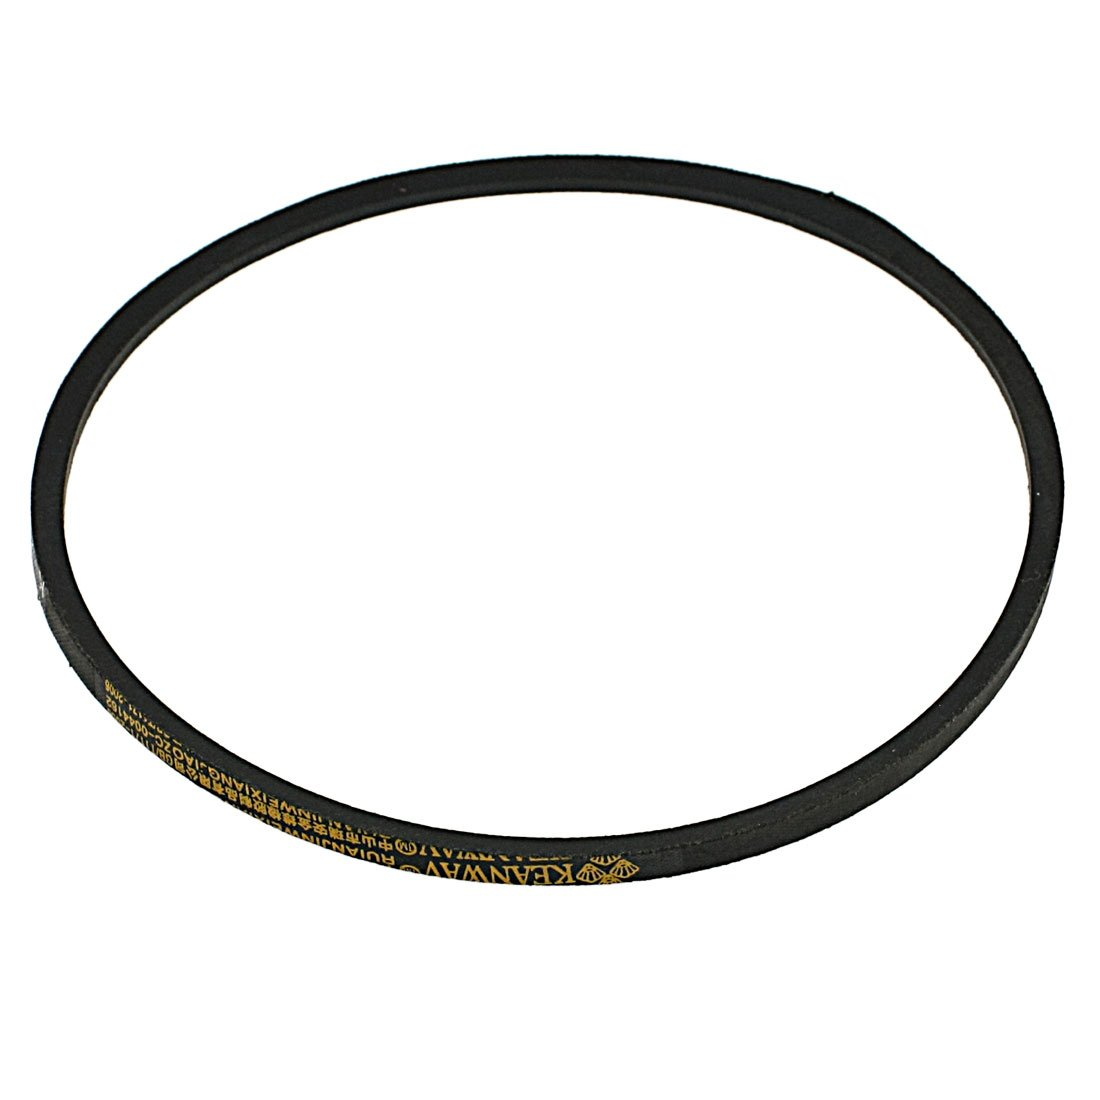 New 5/16 x 26 Industry Lawn Mower Black Rubber K Type Vee V Belt K-26 k v gortners karalienes zvērests